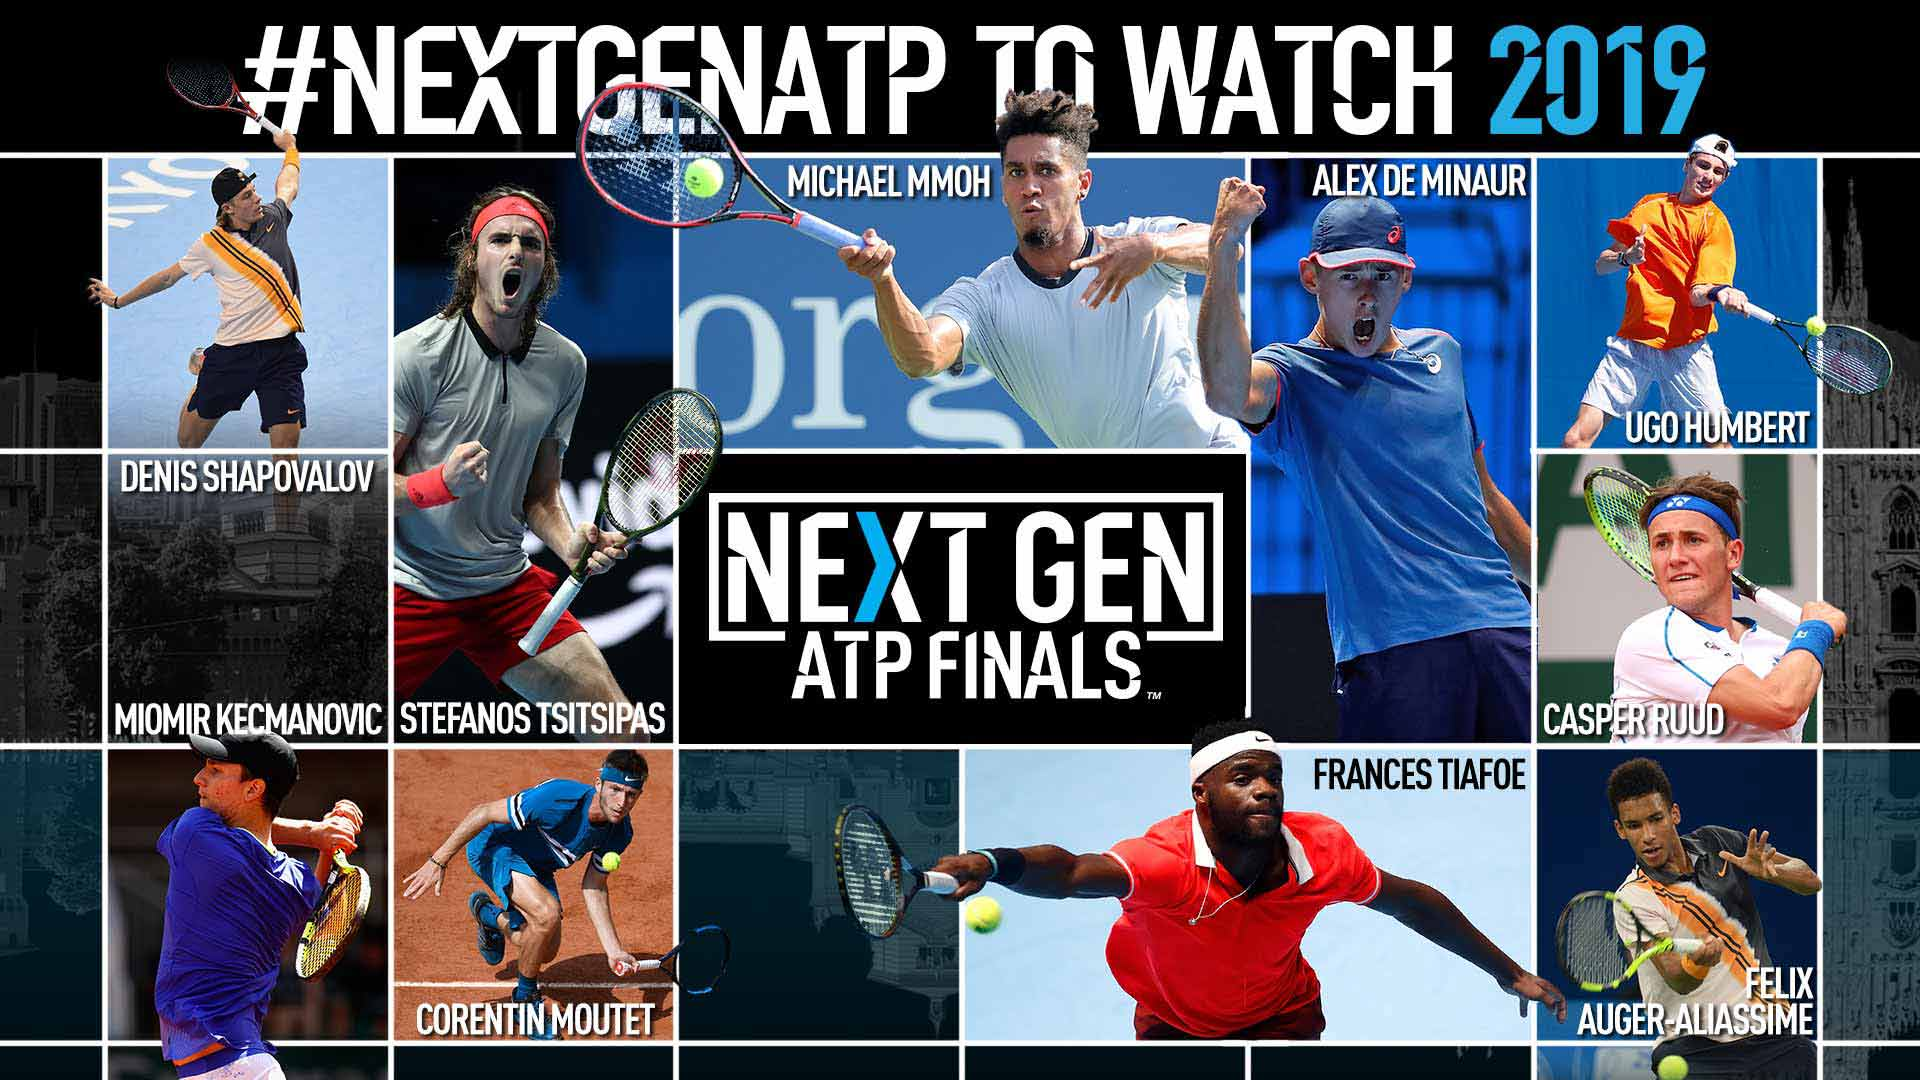 NextGenATP to watch in 2019